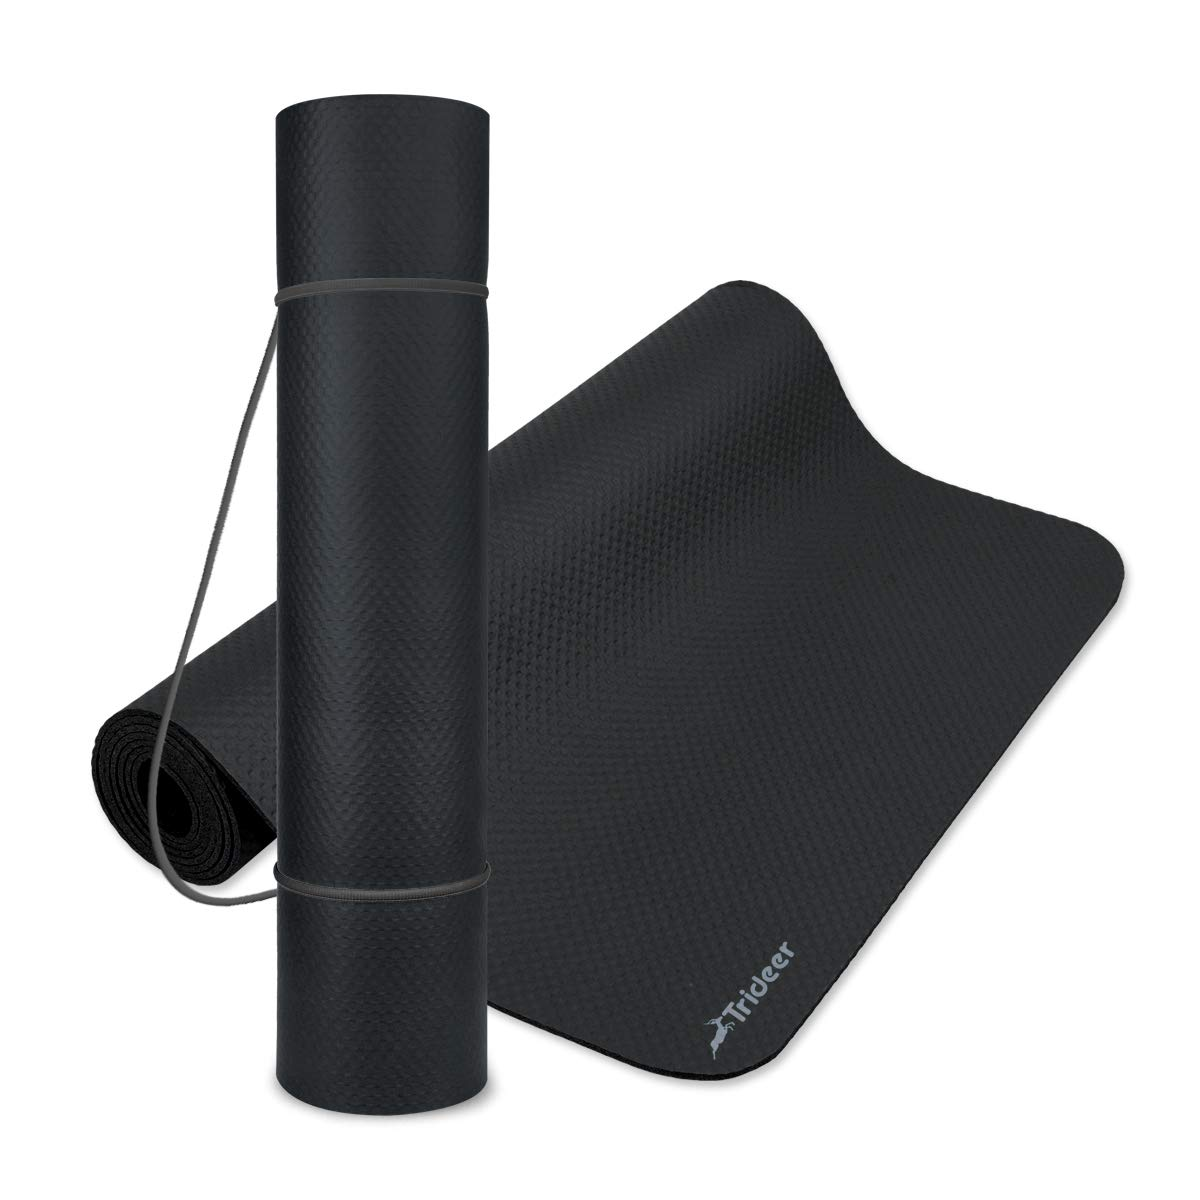 17d8be4ceab8 Amazon.com   Trideer Portable Exercise Mat (4mm)